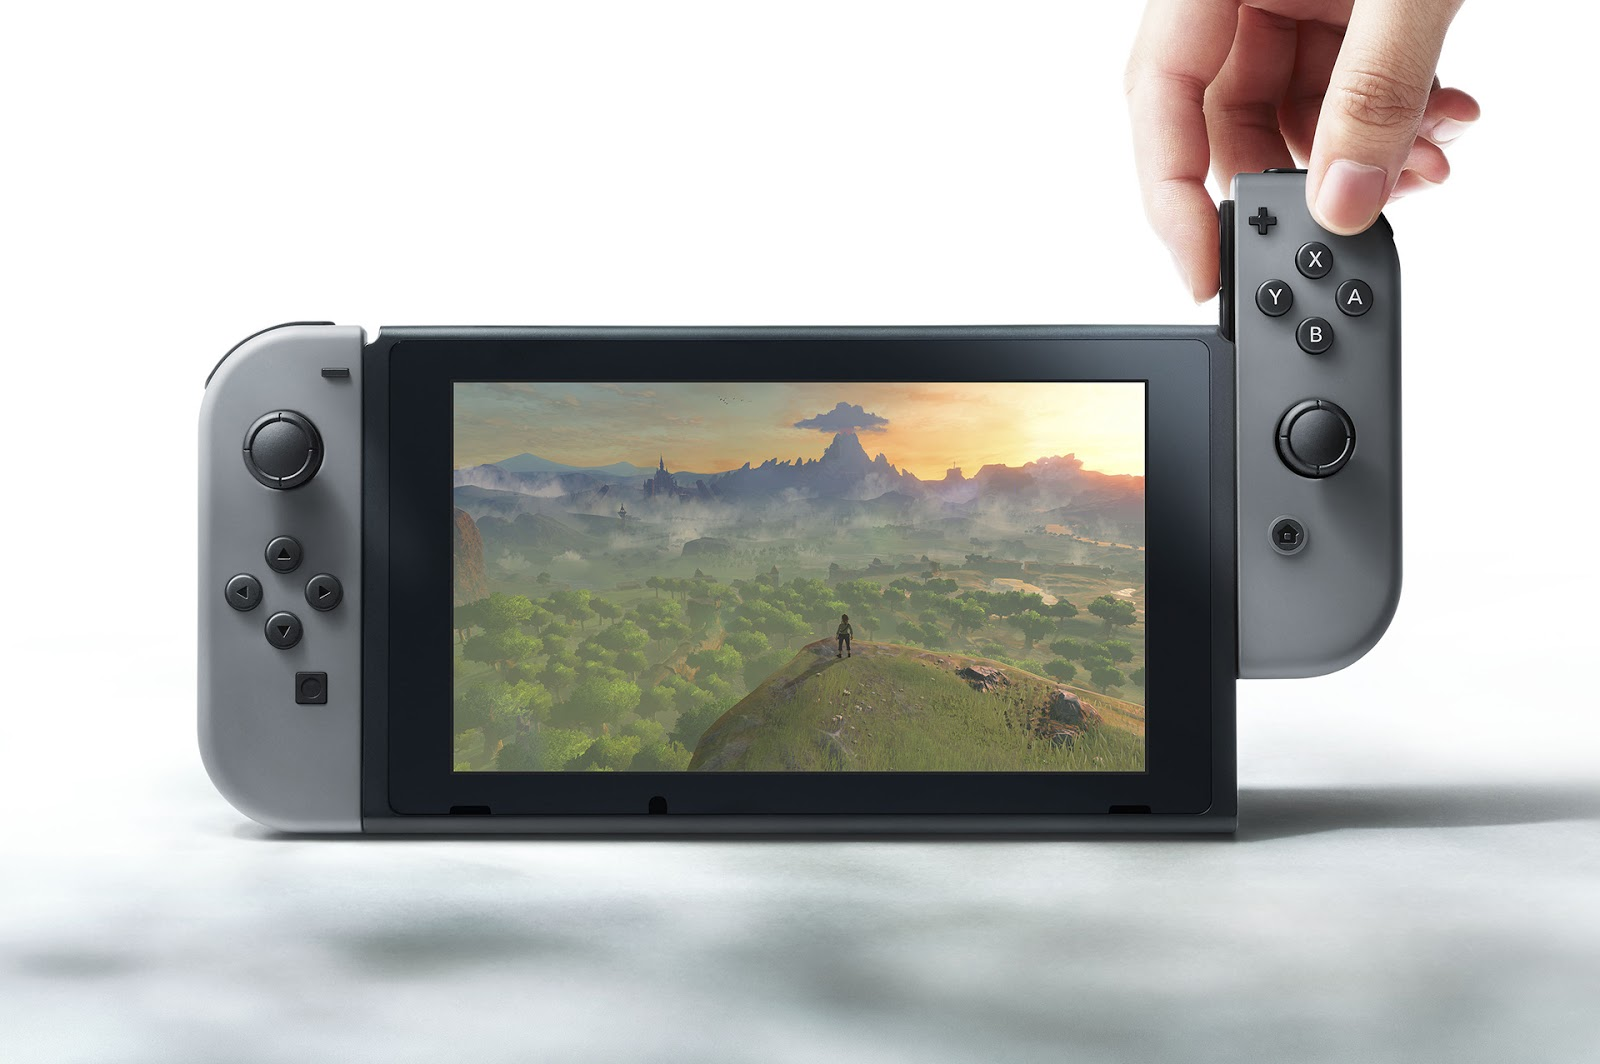 NINTENDO SWITCH PRICING AND RELEASE DATE